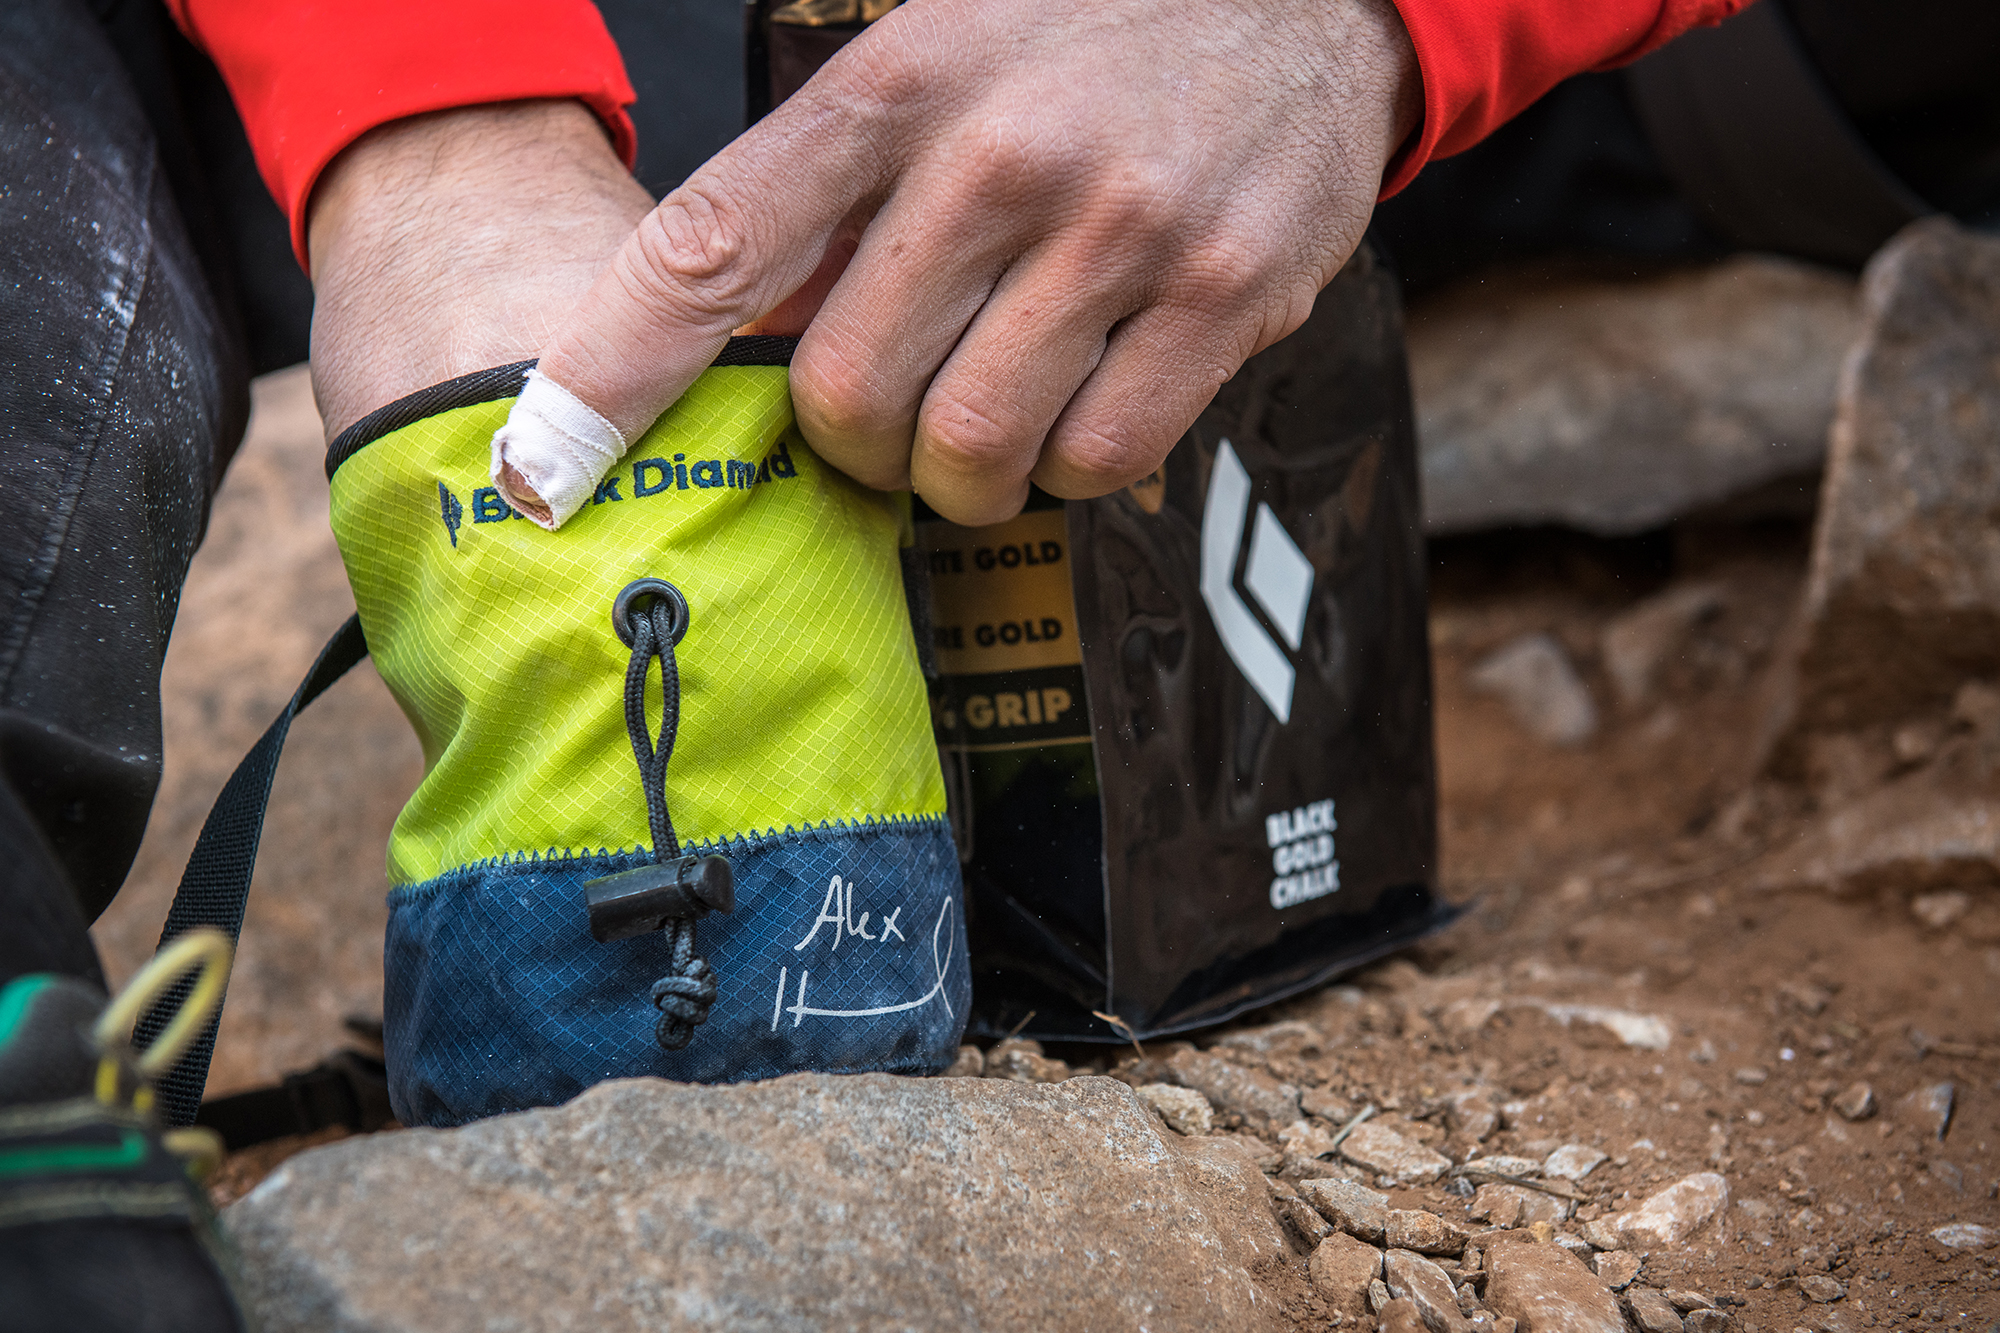 Klettergurt Black Diamond Solution : Black diamond präsentiert alex honnold limited edition